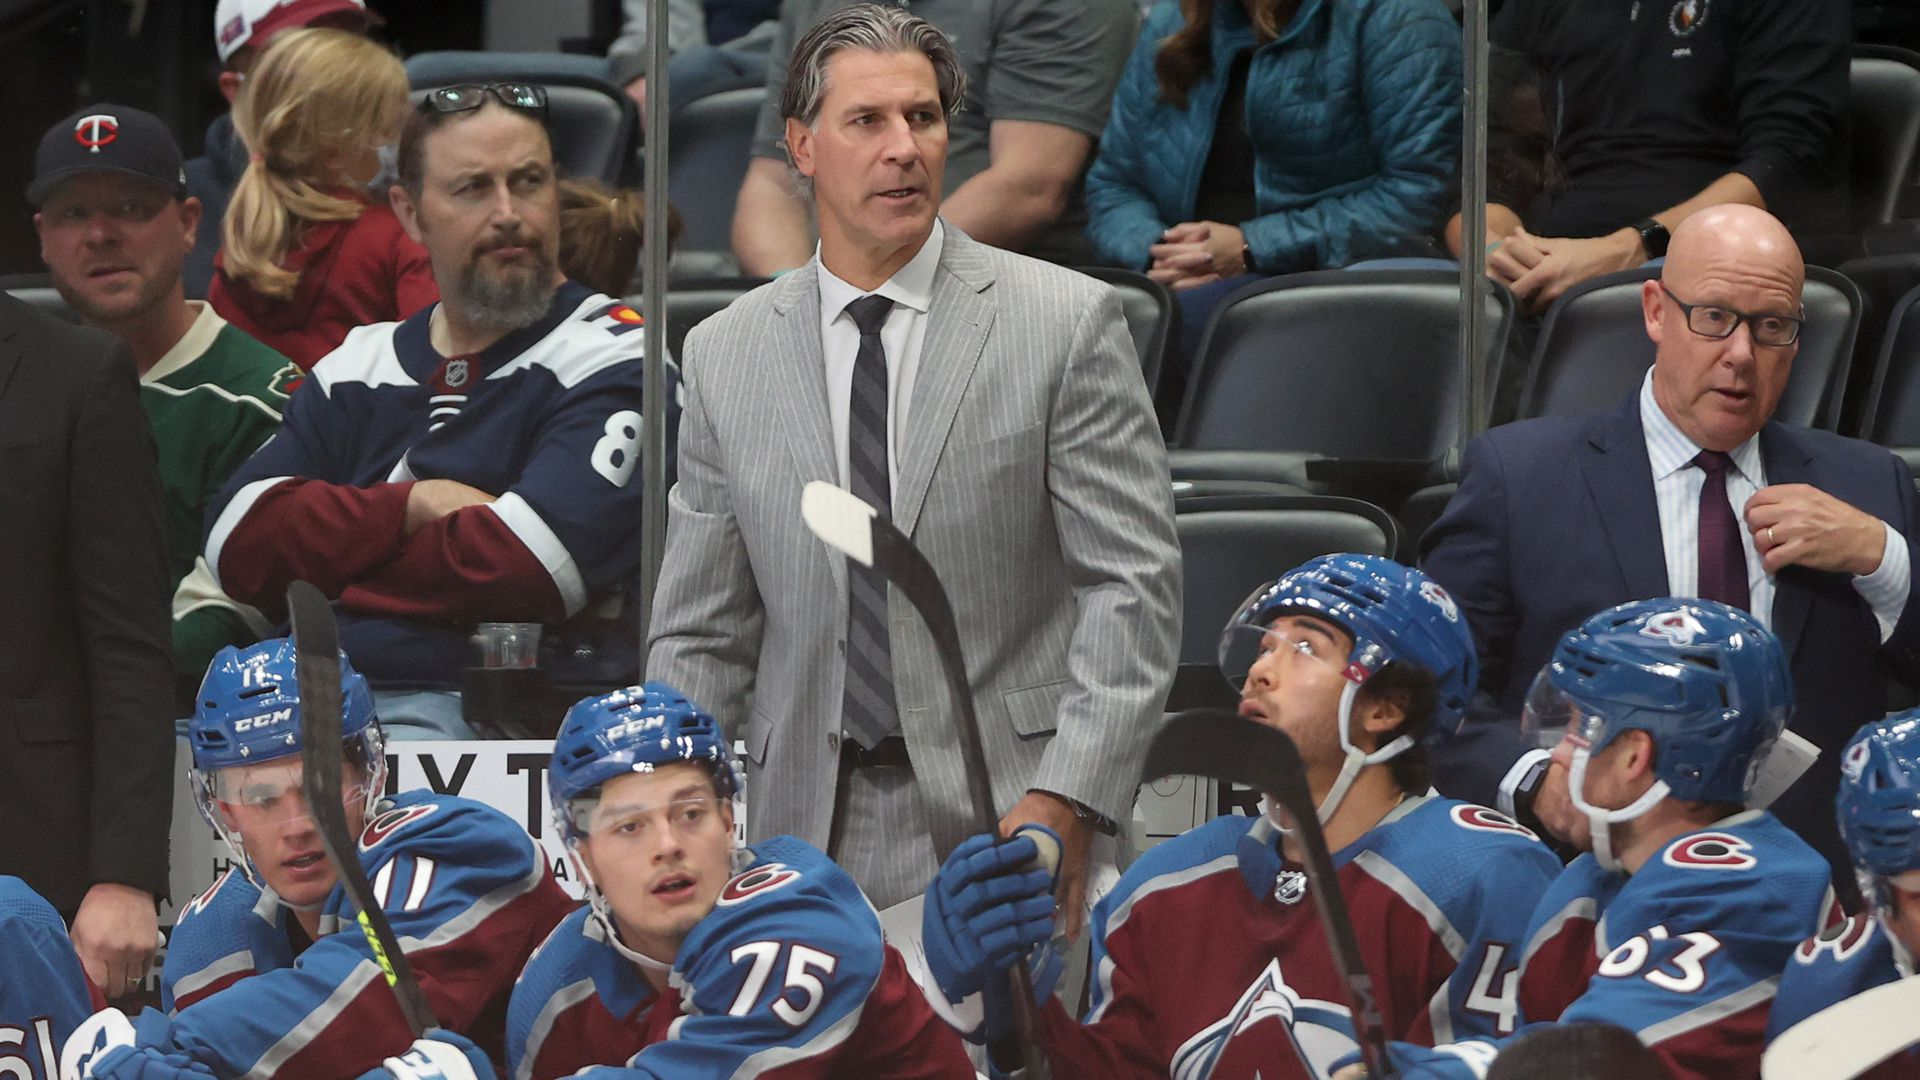 Head coach Jared Bednar of the Colorado Avalanche watches as his team plays a preseason game. Photo: Matthew Stockman/Getty Images